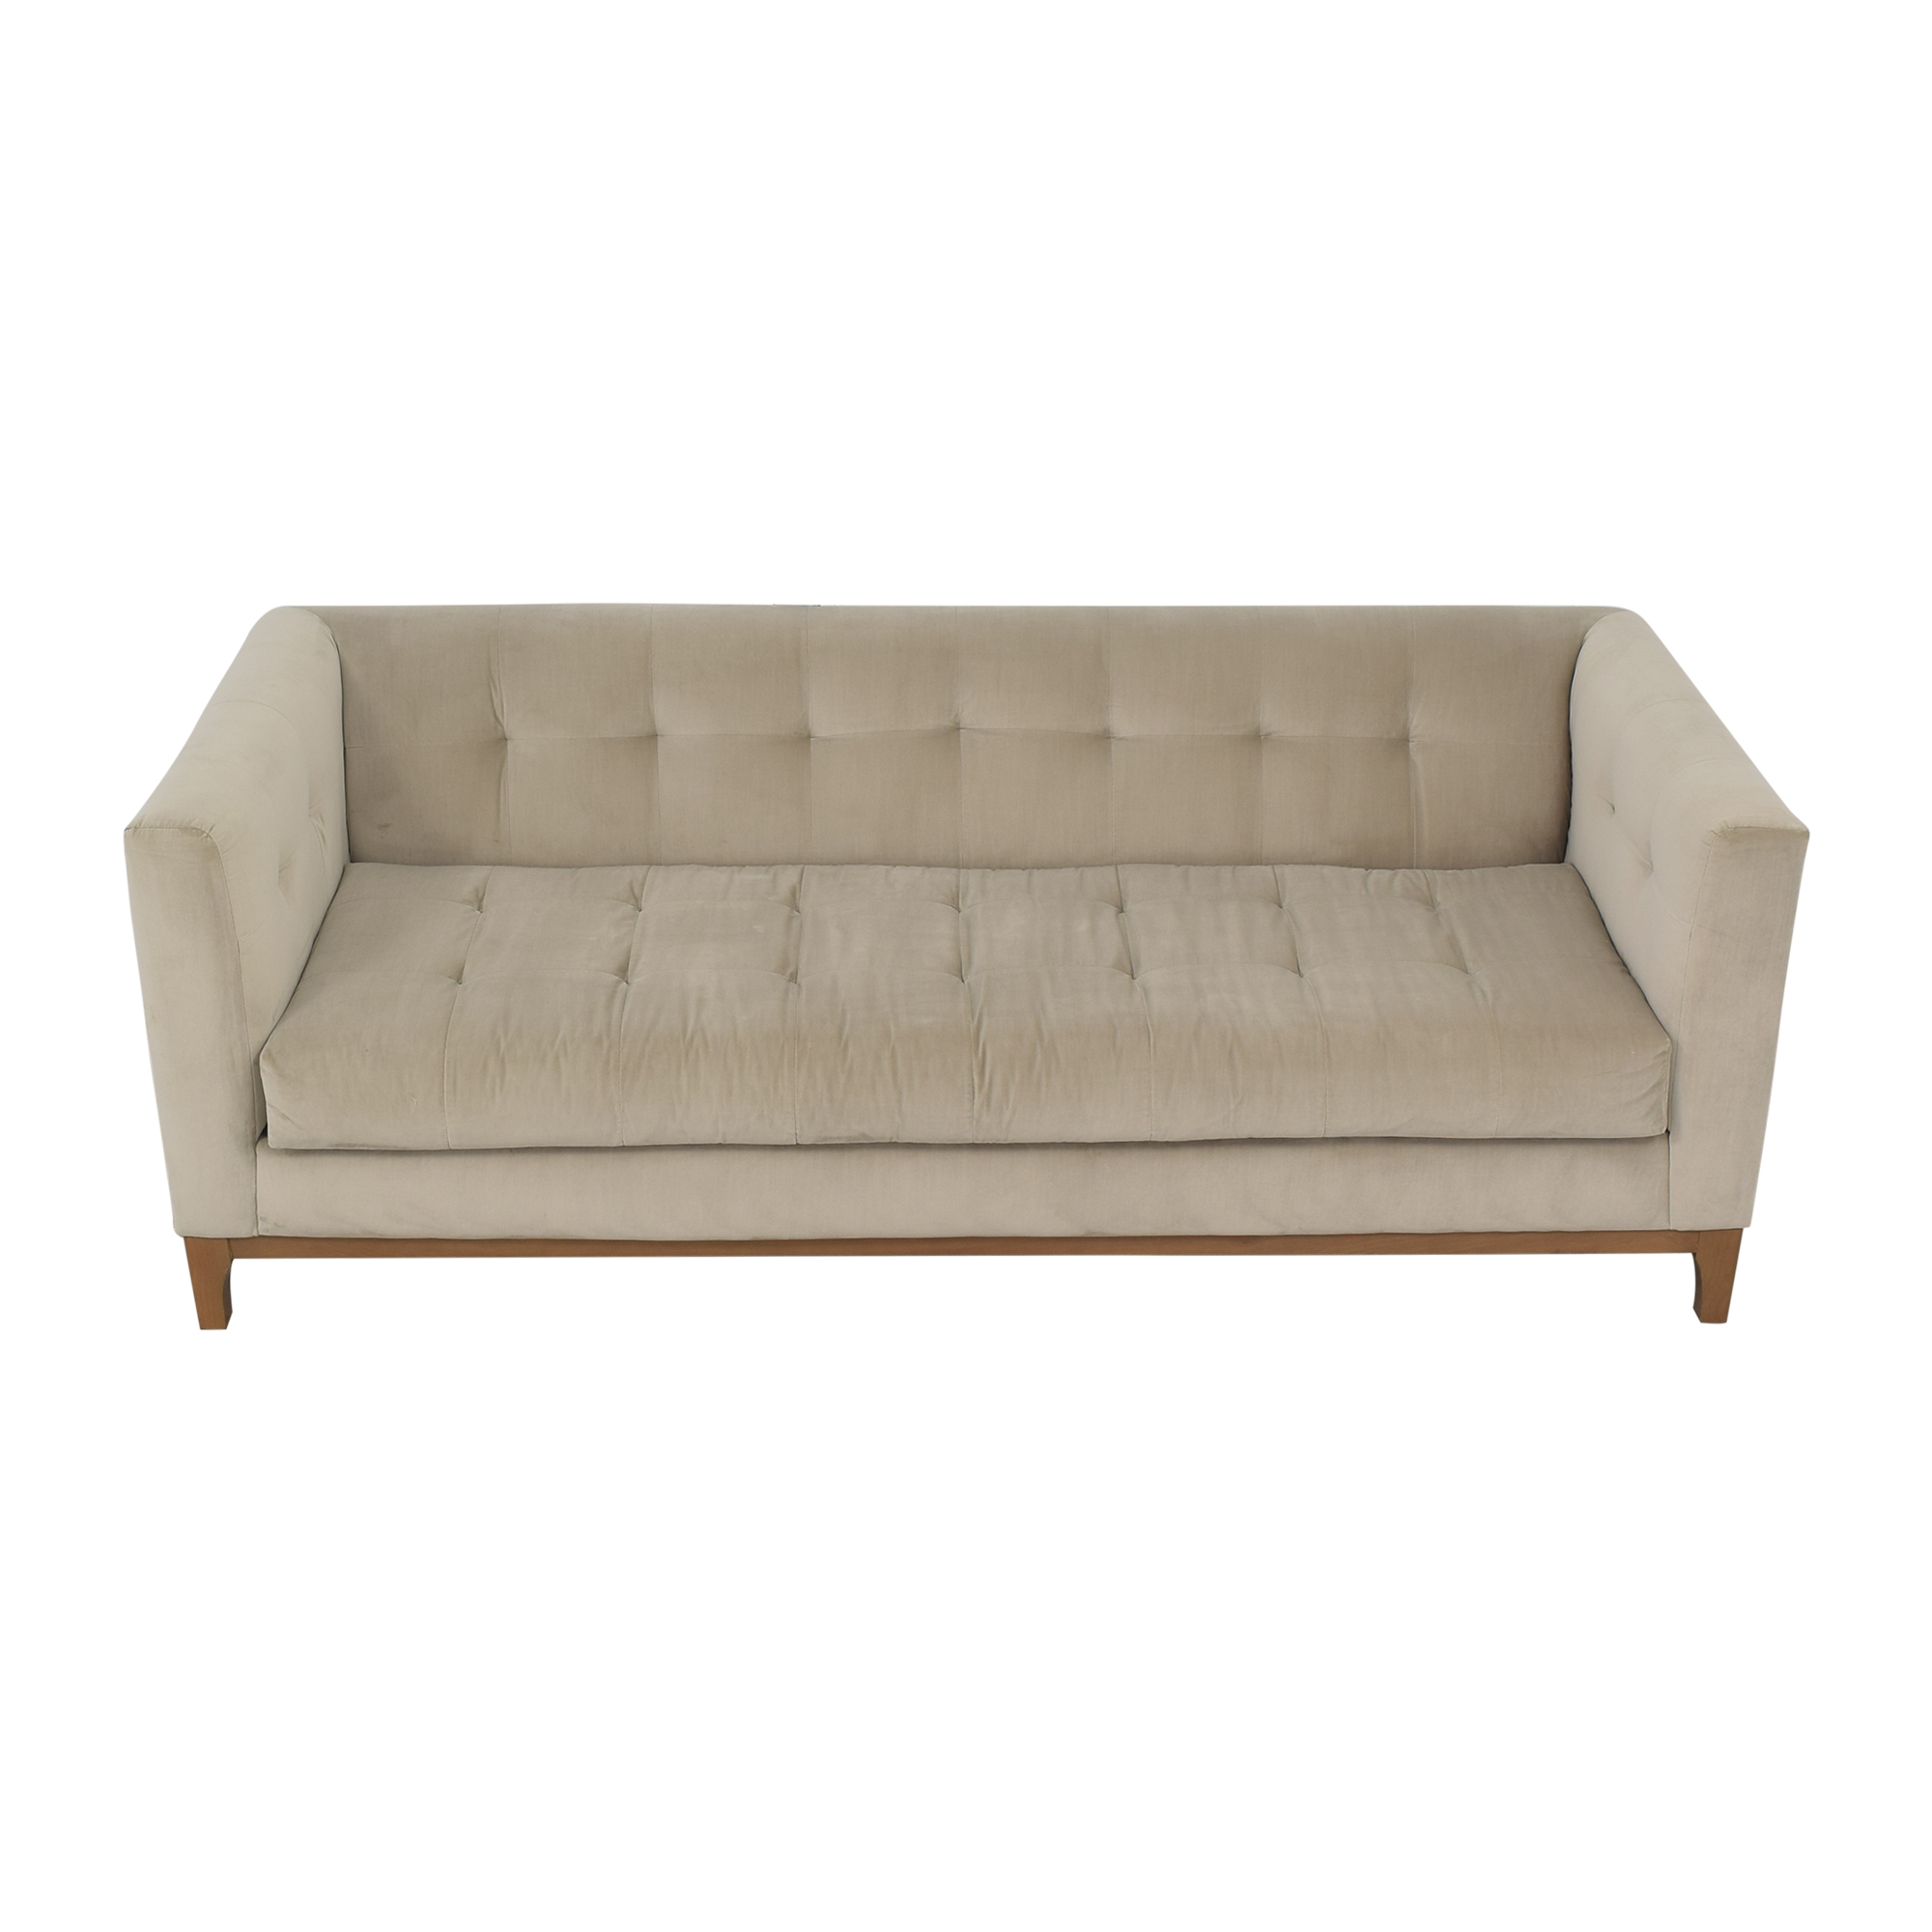 Macy's Martha Stewart Collection Brookline Sofa sale